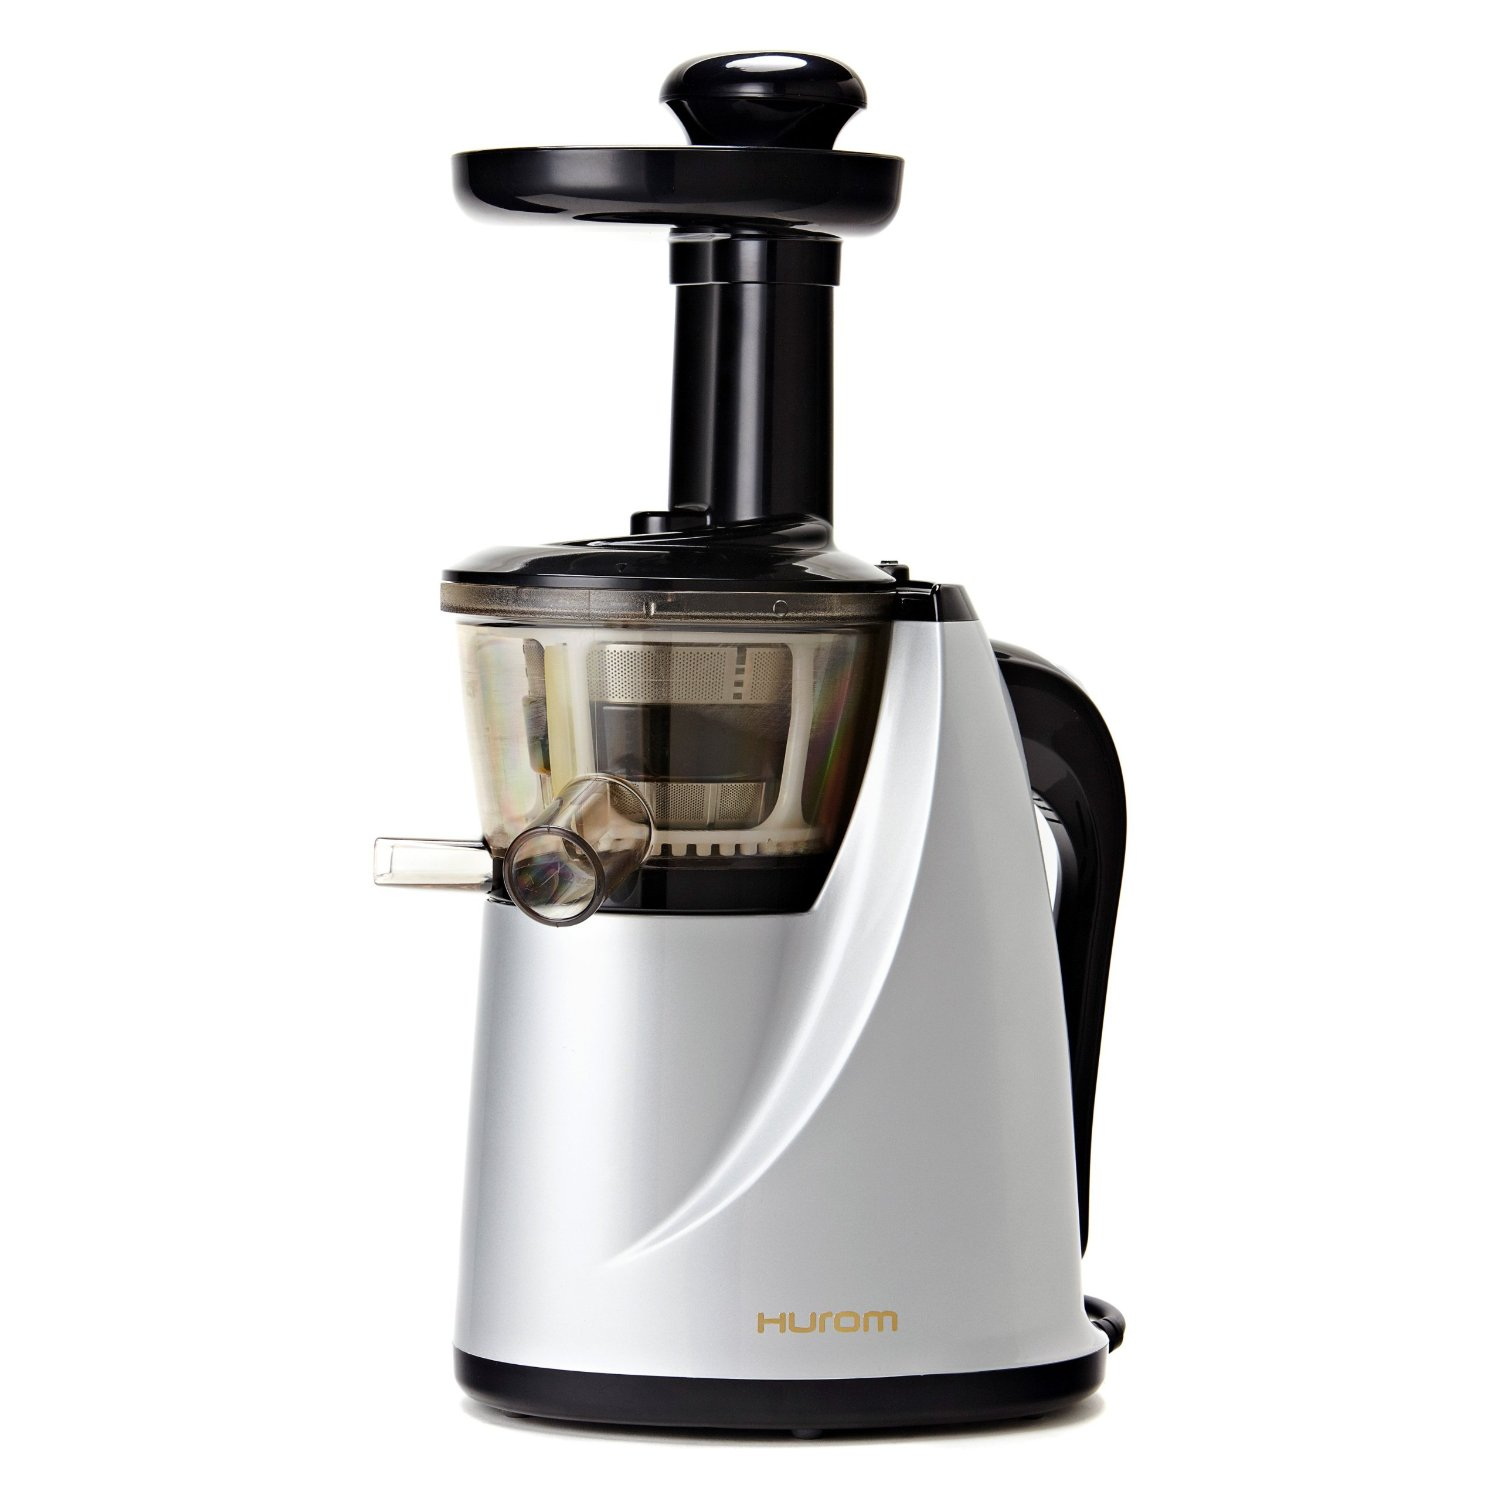 Hurom Slow Juicer How To Use : Hurom HU-100 Masticating Slow Juicer Review - Best Cold Press Juicers